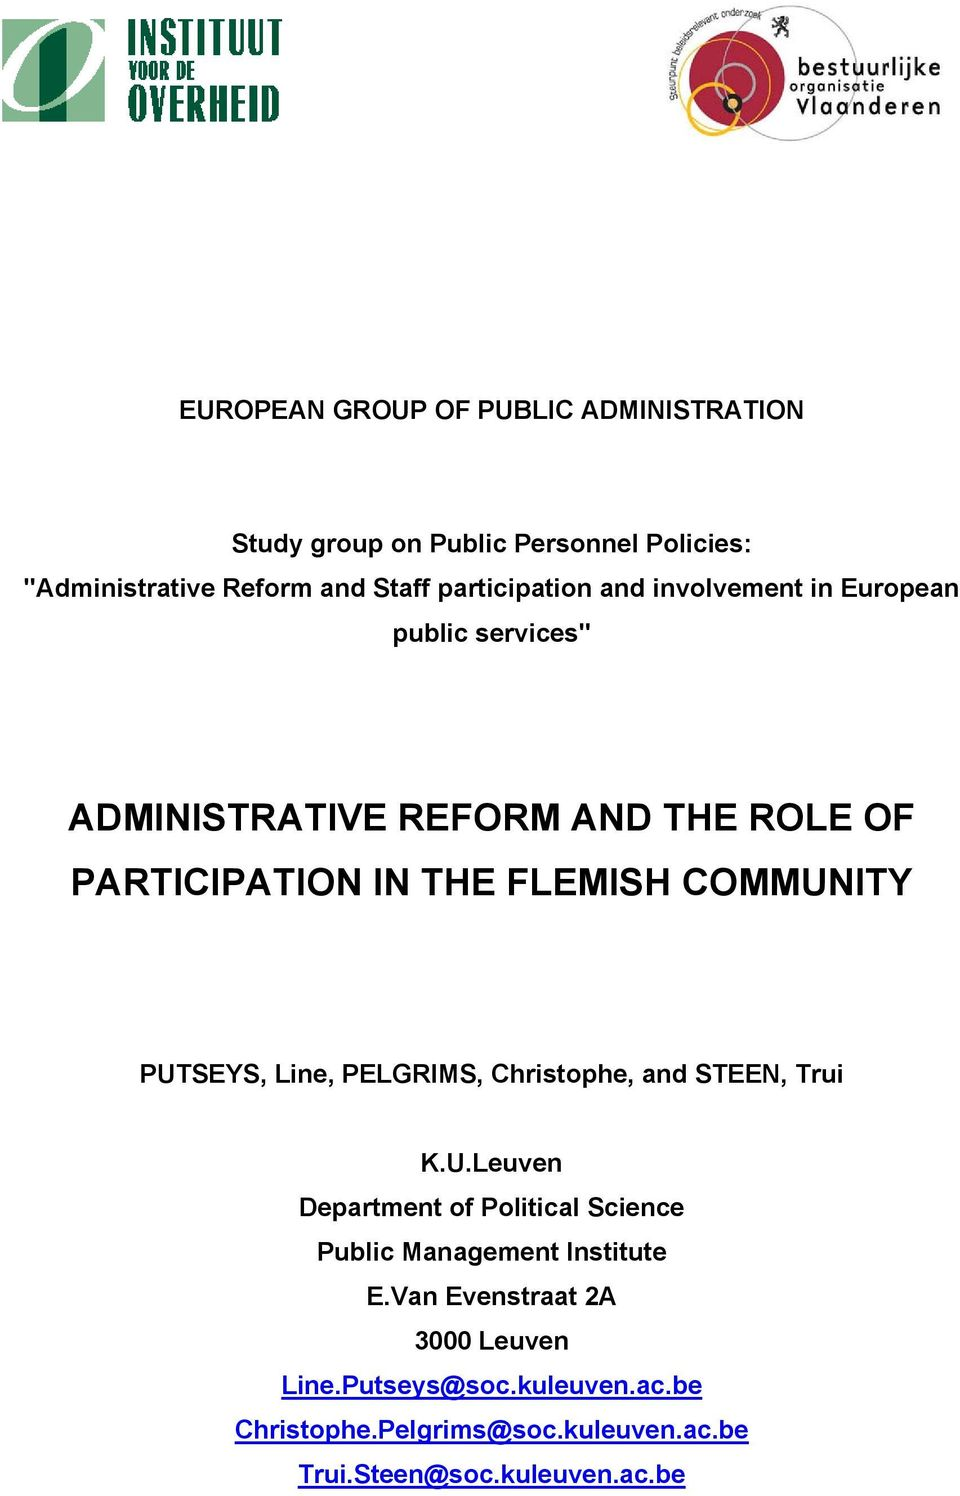 COMMUNITY PUTSEYS, Line, PELGRIMS, Christophe, and STEEN, Trui K.U.Leuven Department of Political Science Public Management Institute E.